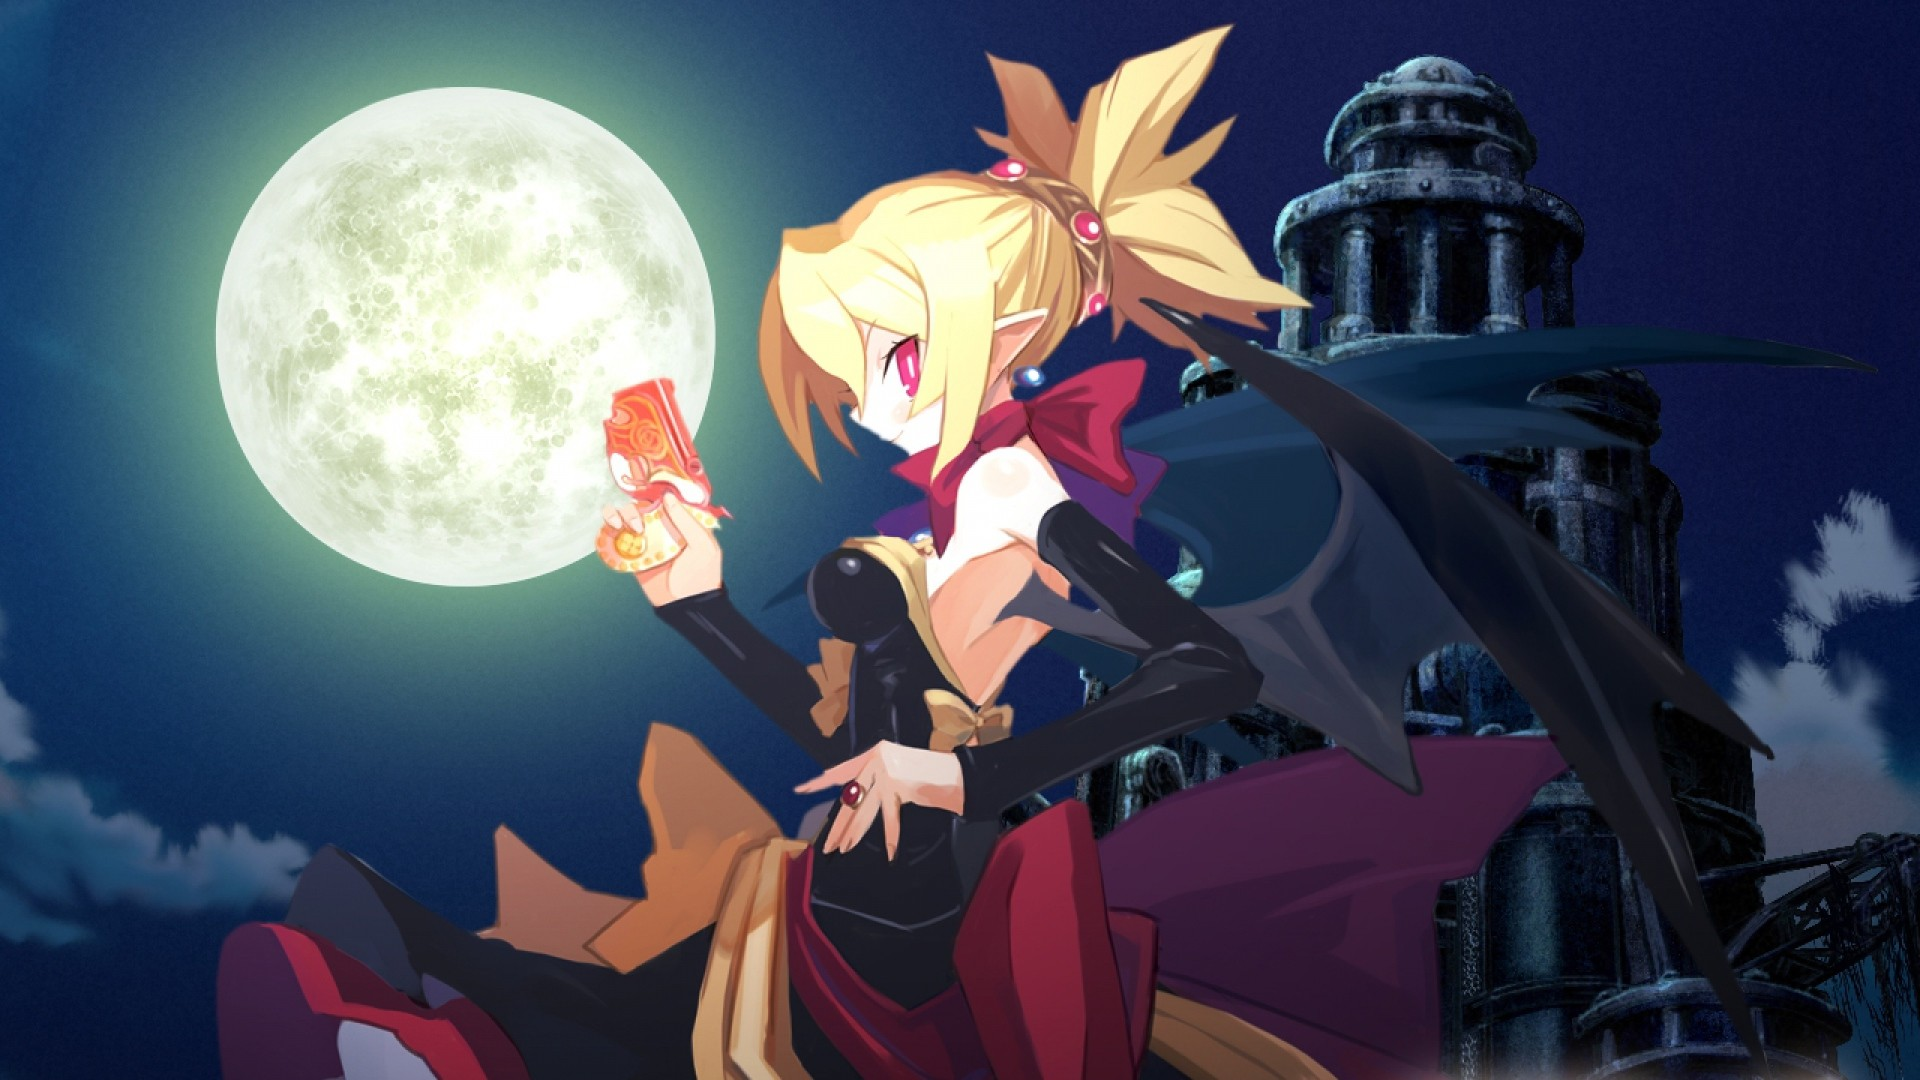 Res: 1920x1080, Get the latest demon disgaea 2, girl, dress news, pictures and videos and  learn all about demon disgaea 2, girl, dress from wallpapers4u.org, your  wallpaper ...